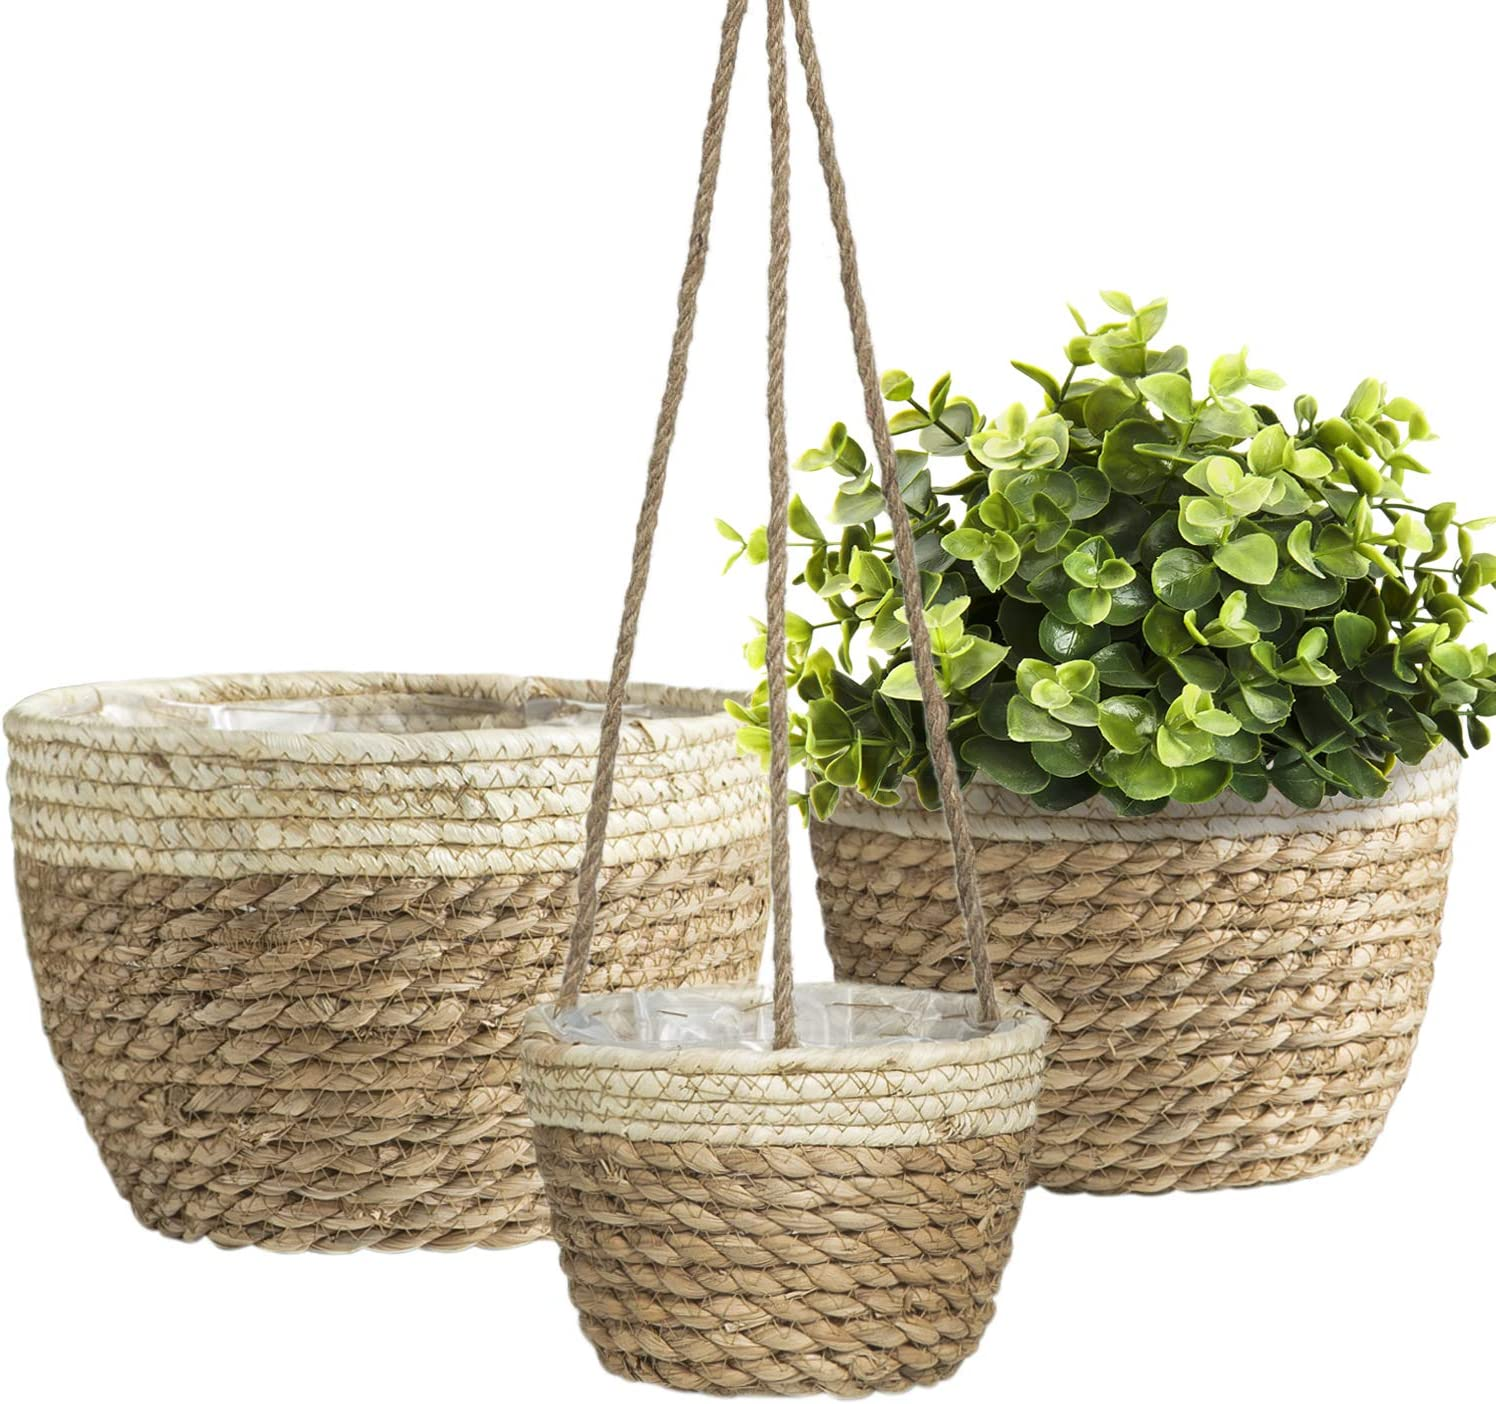 3pack Seagrass Farmhouse Planter Basket, Flower Pots for Plants Indoor Outdoor, Large House Plant Pots 10 inch, Planter Gardening Pots Cover, Hanging Planter Baskets Decor Plant Pots Indoor